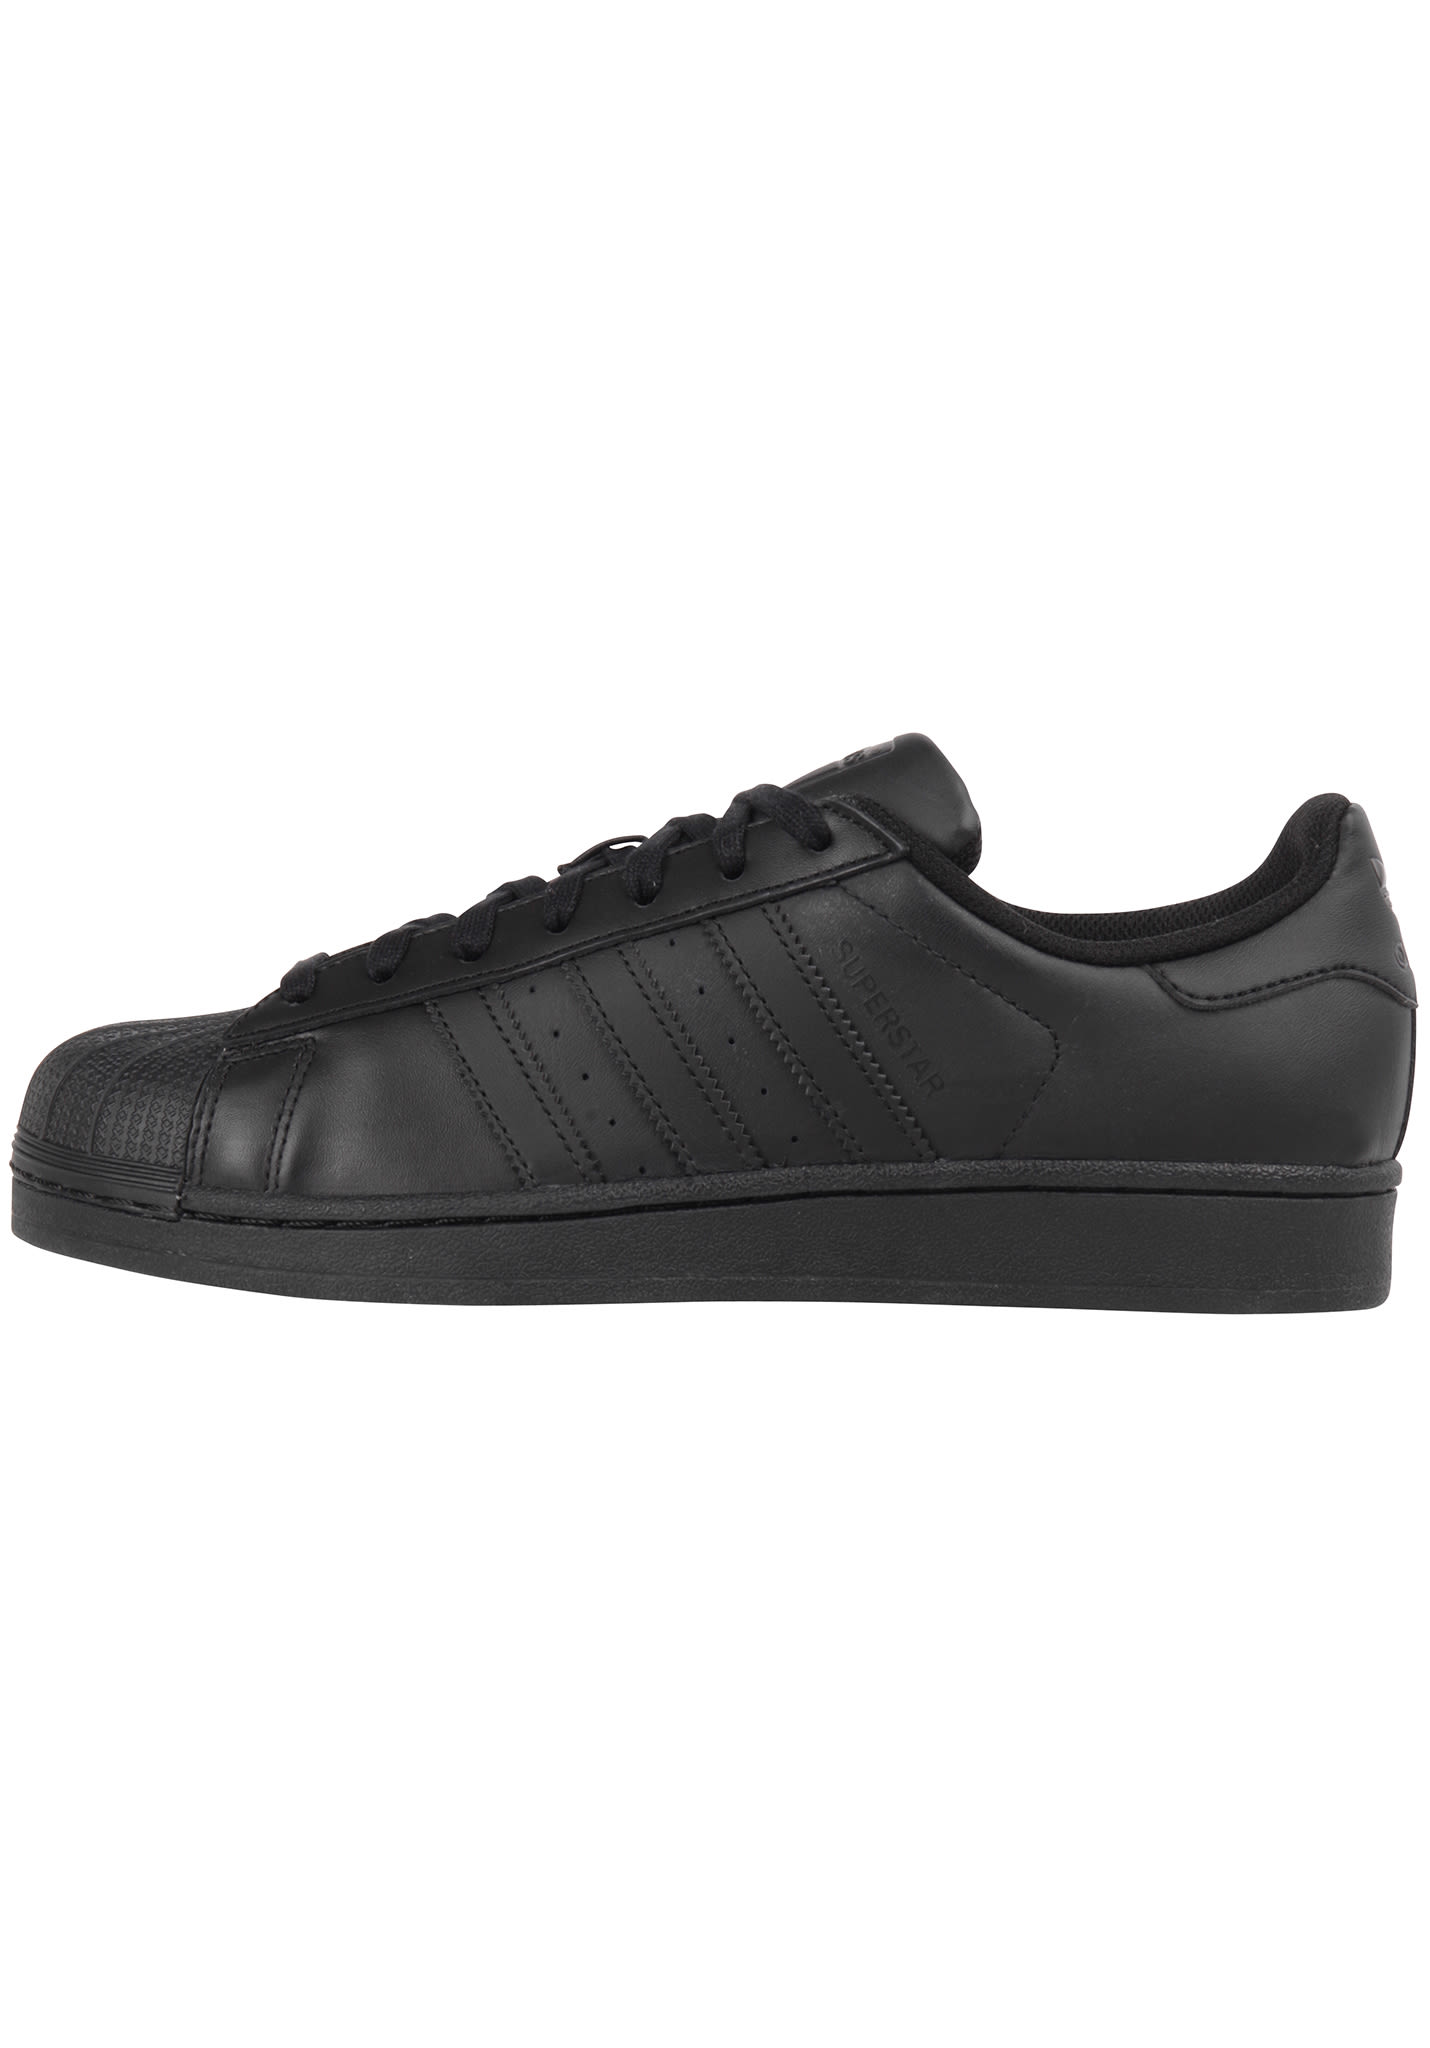 adidas superstar high herren